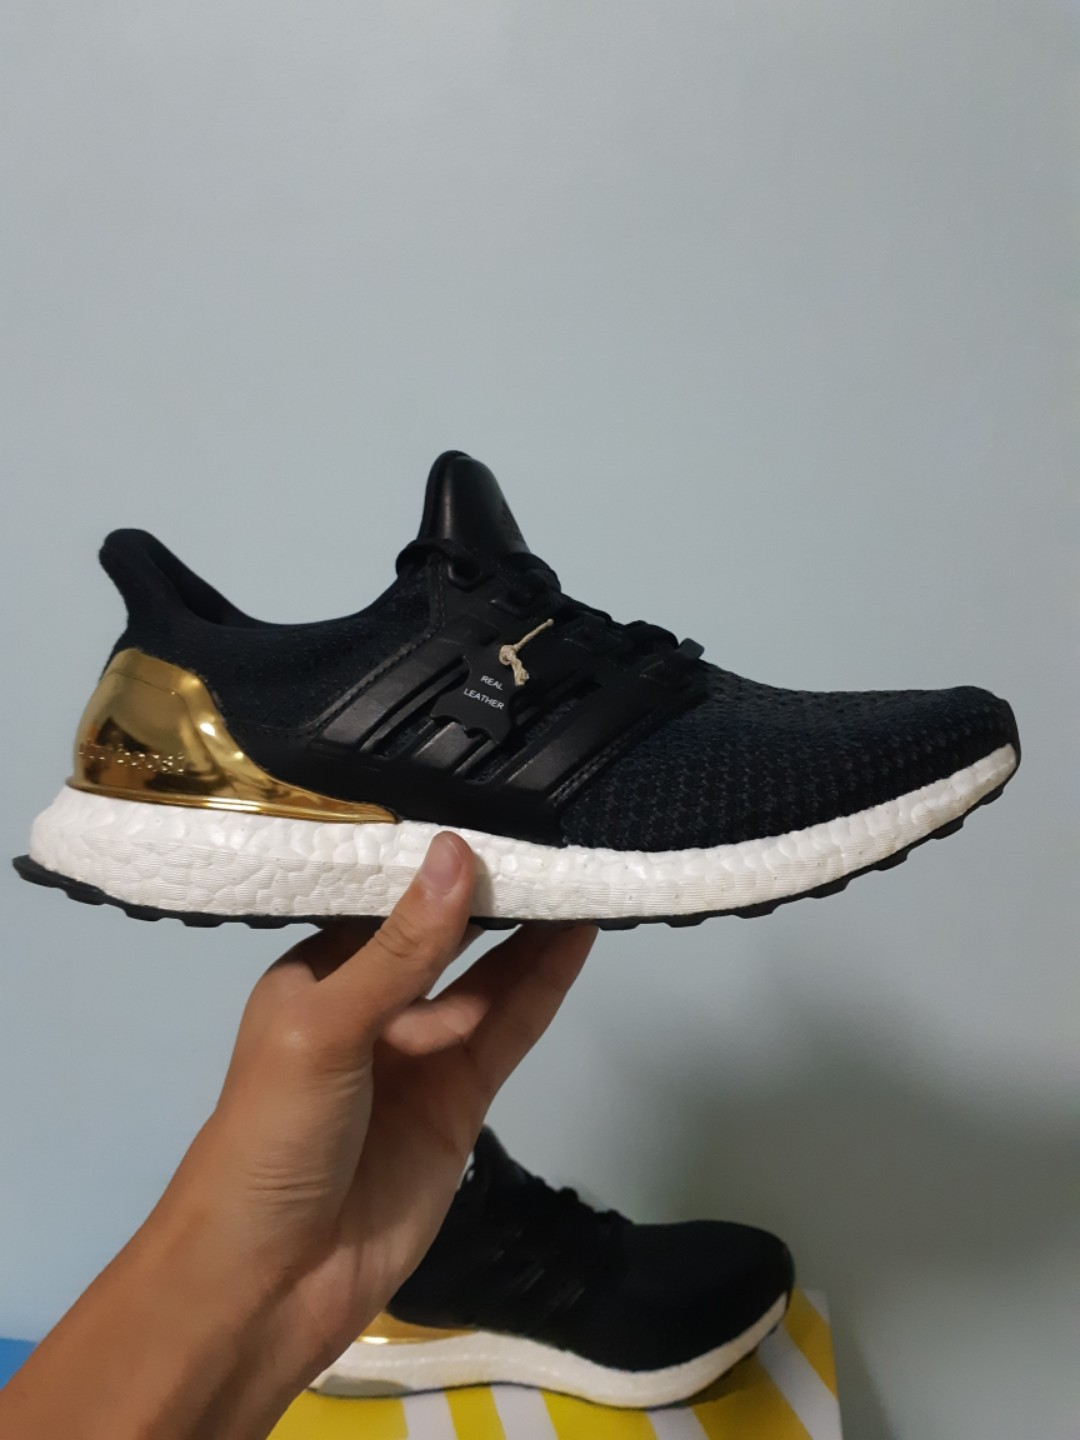 94a3addb6 Ultra Boost 2.0 Gold Medal